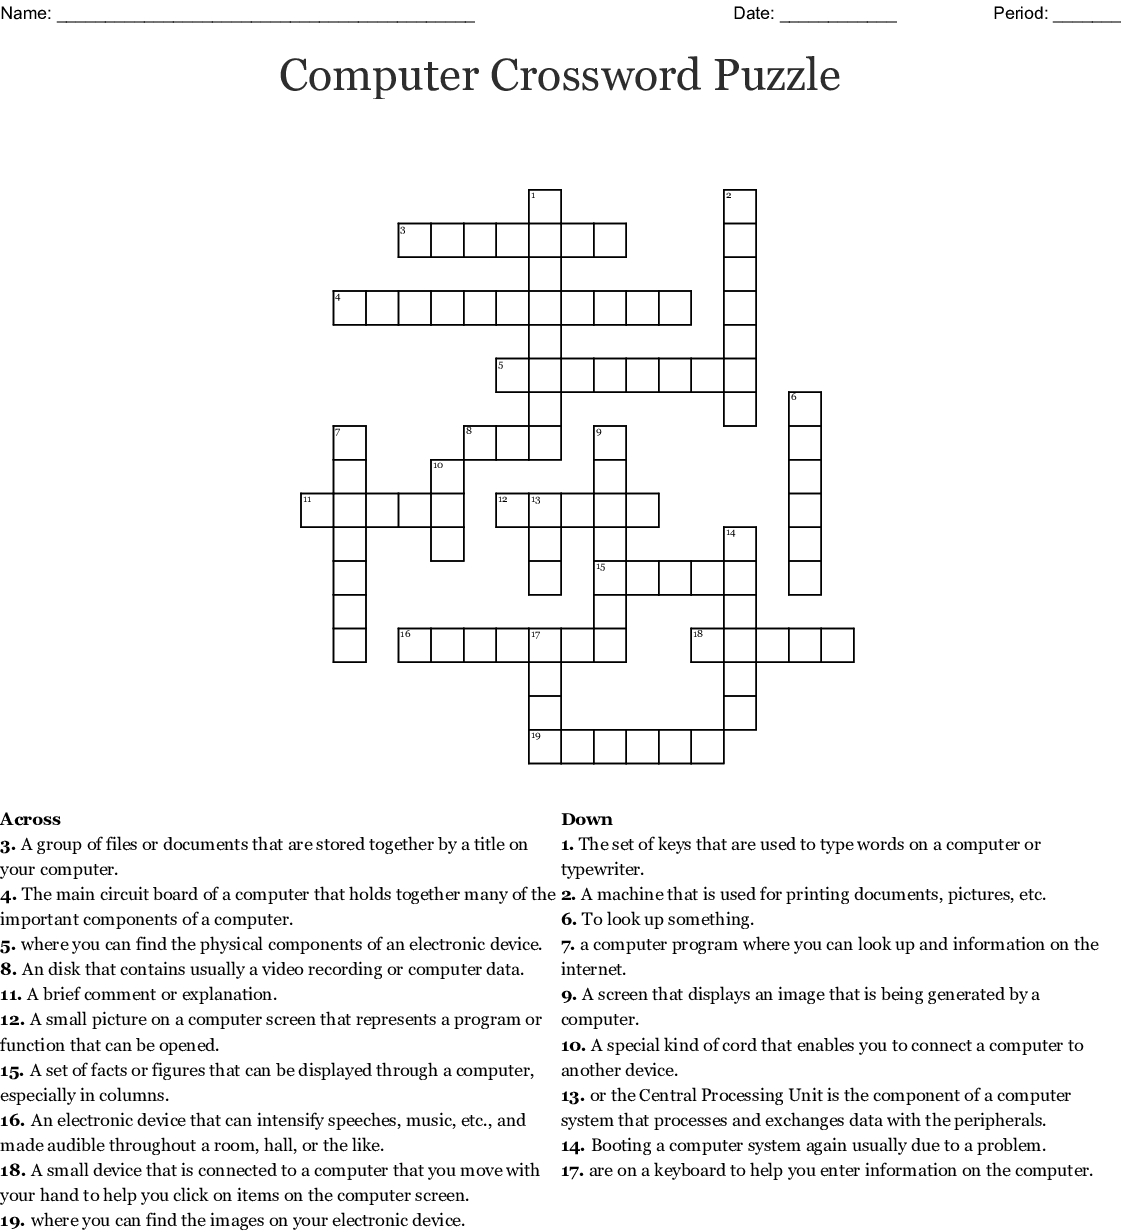 Computer Crossword Puzzle Crossword - Wordmint - Computer Crossword Puzzles Printable